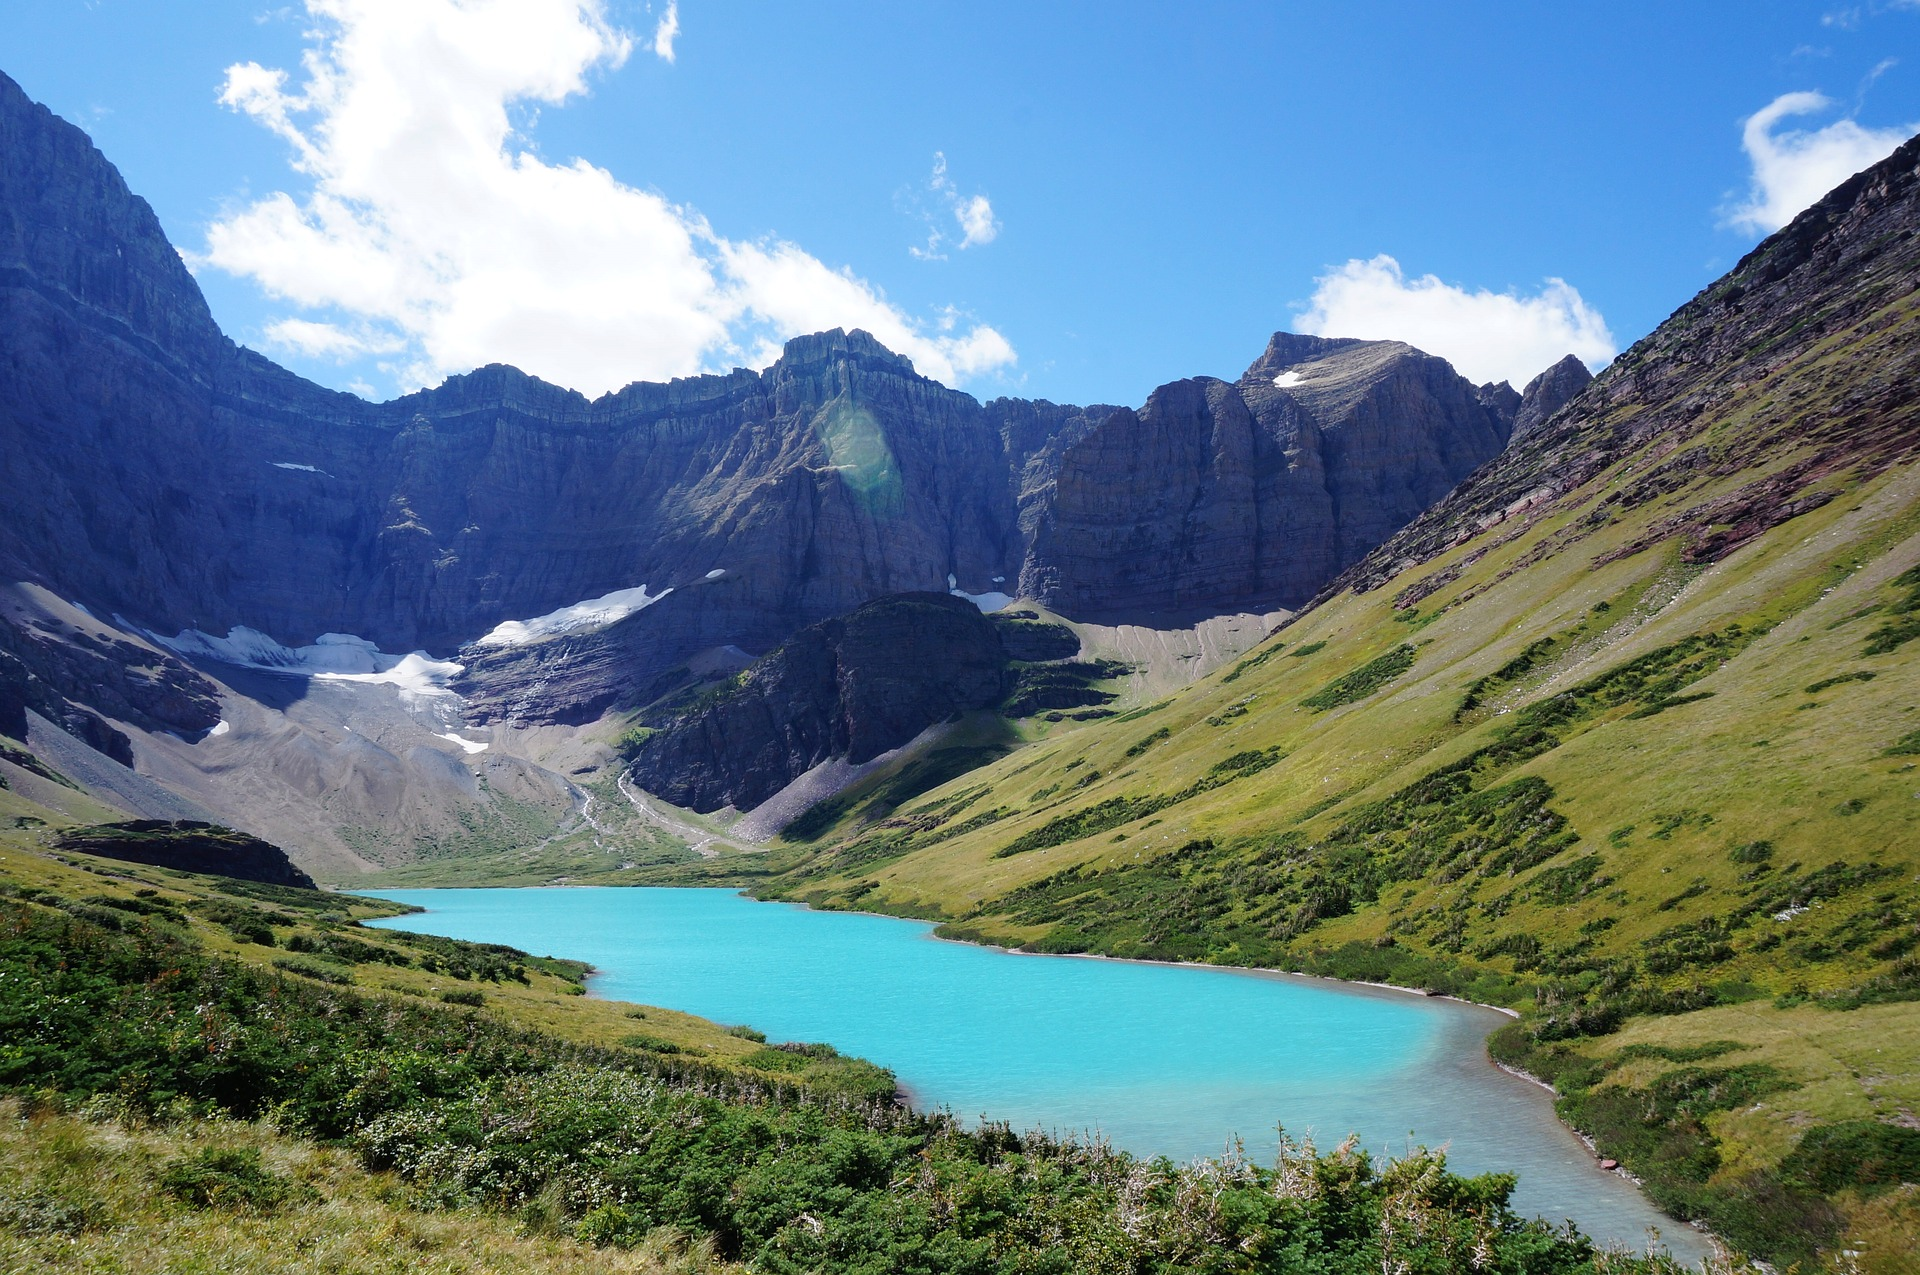 cracker lake is beautiful and some consider it to be the best hiking trail in america